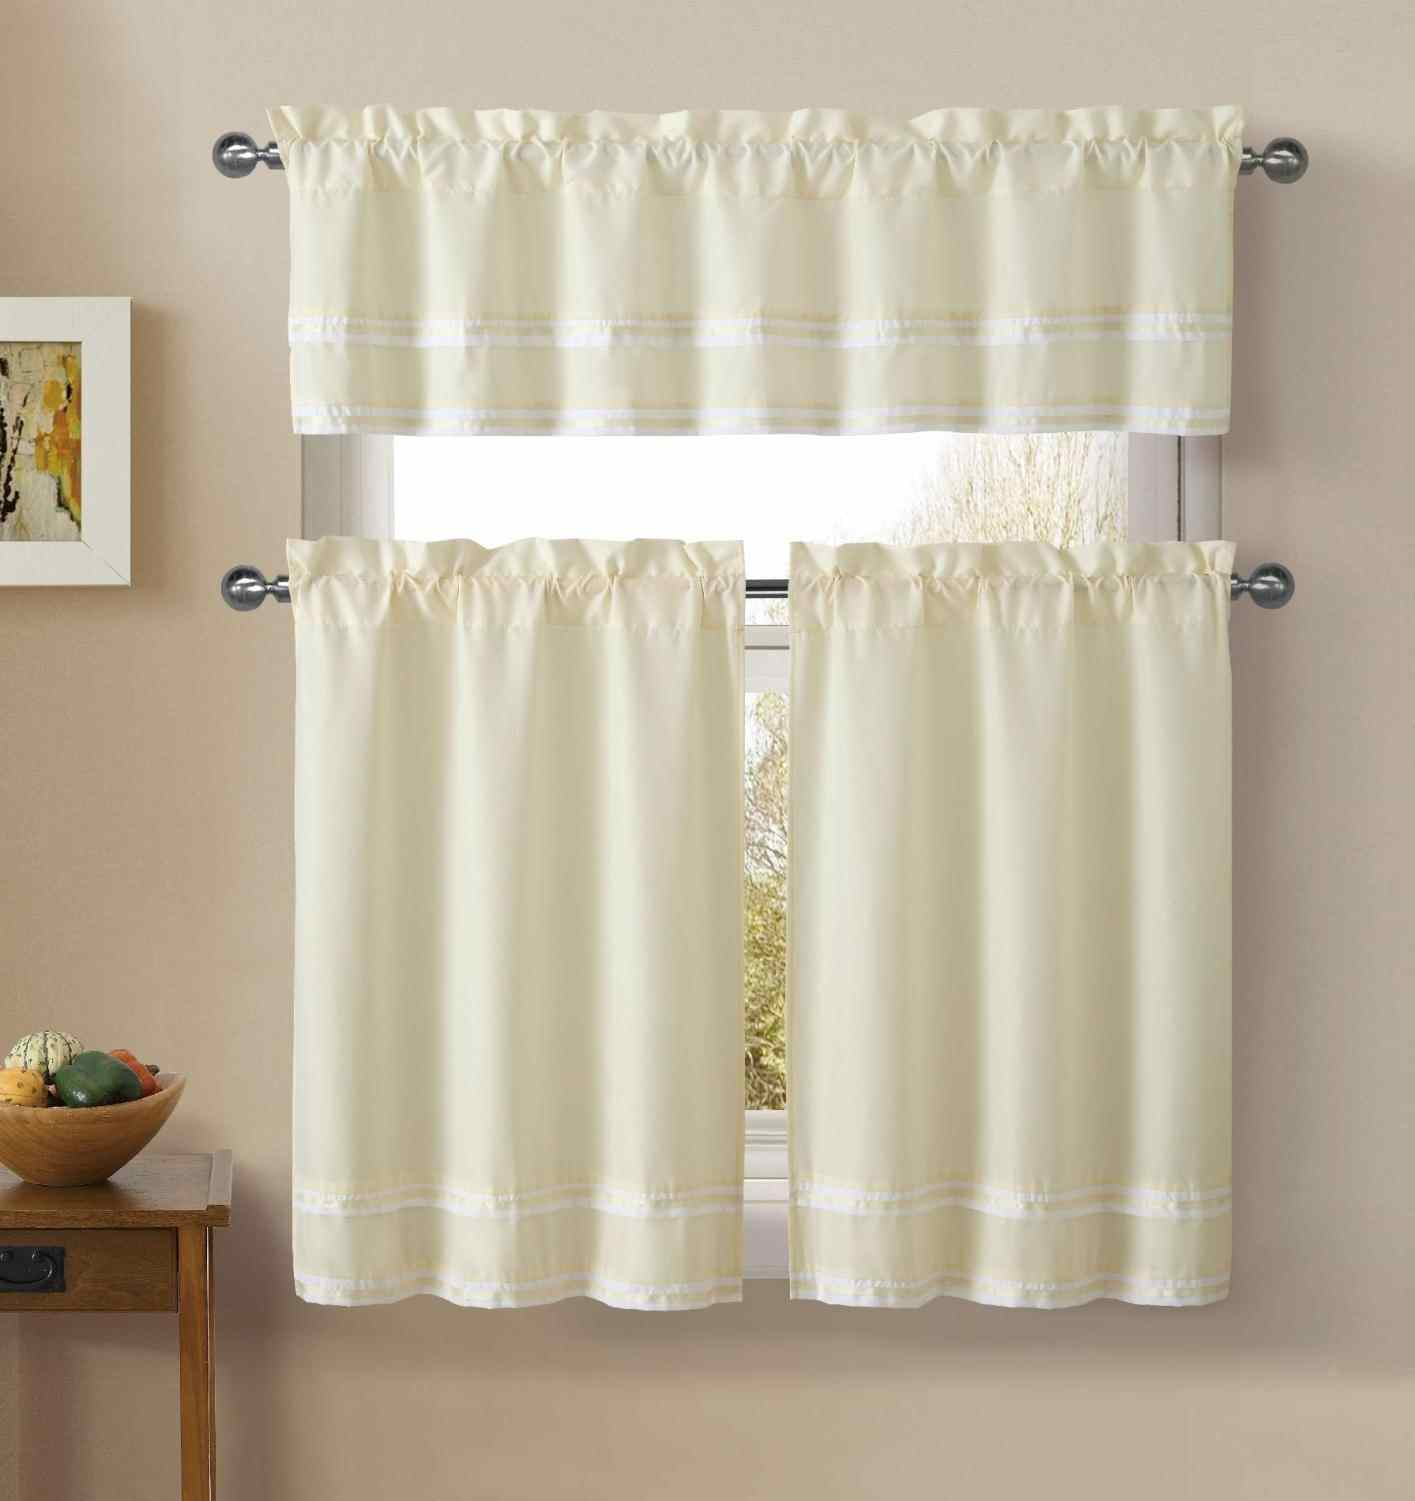 Ikea Shower Curtain | Shower Curtain Rod | Ikea Shower Pole